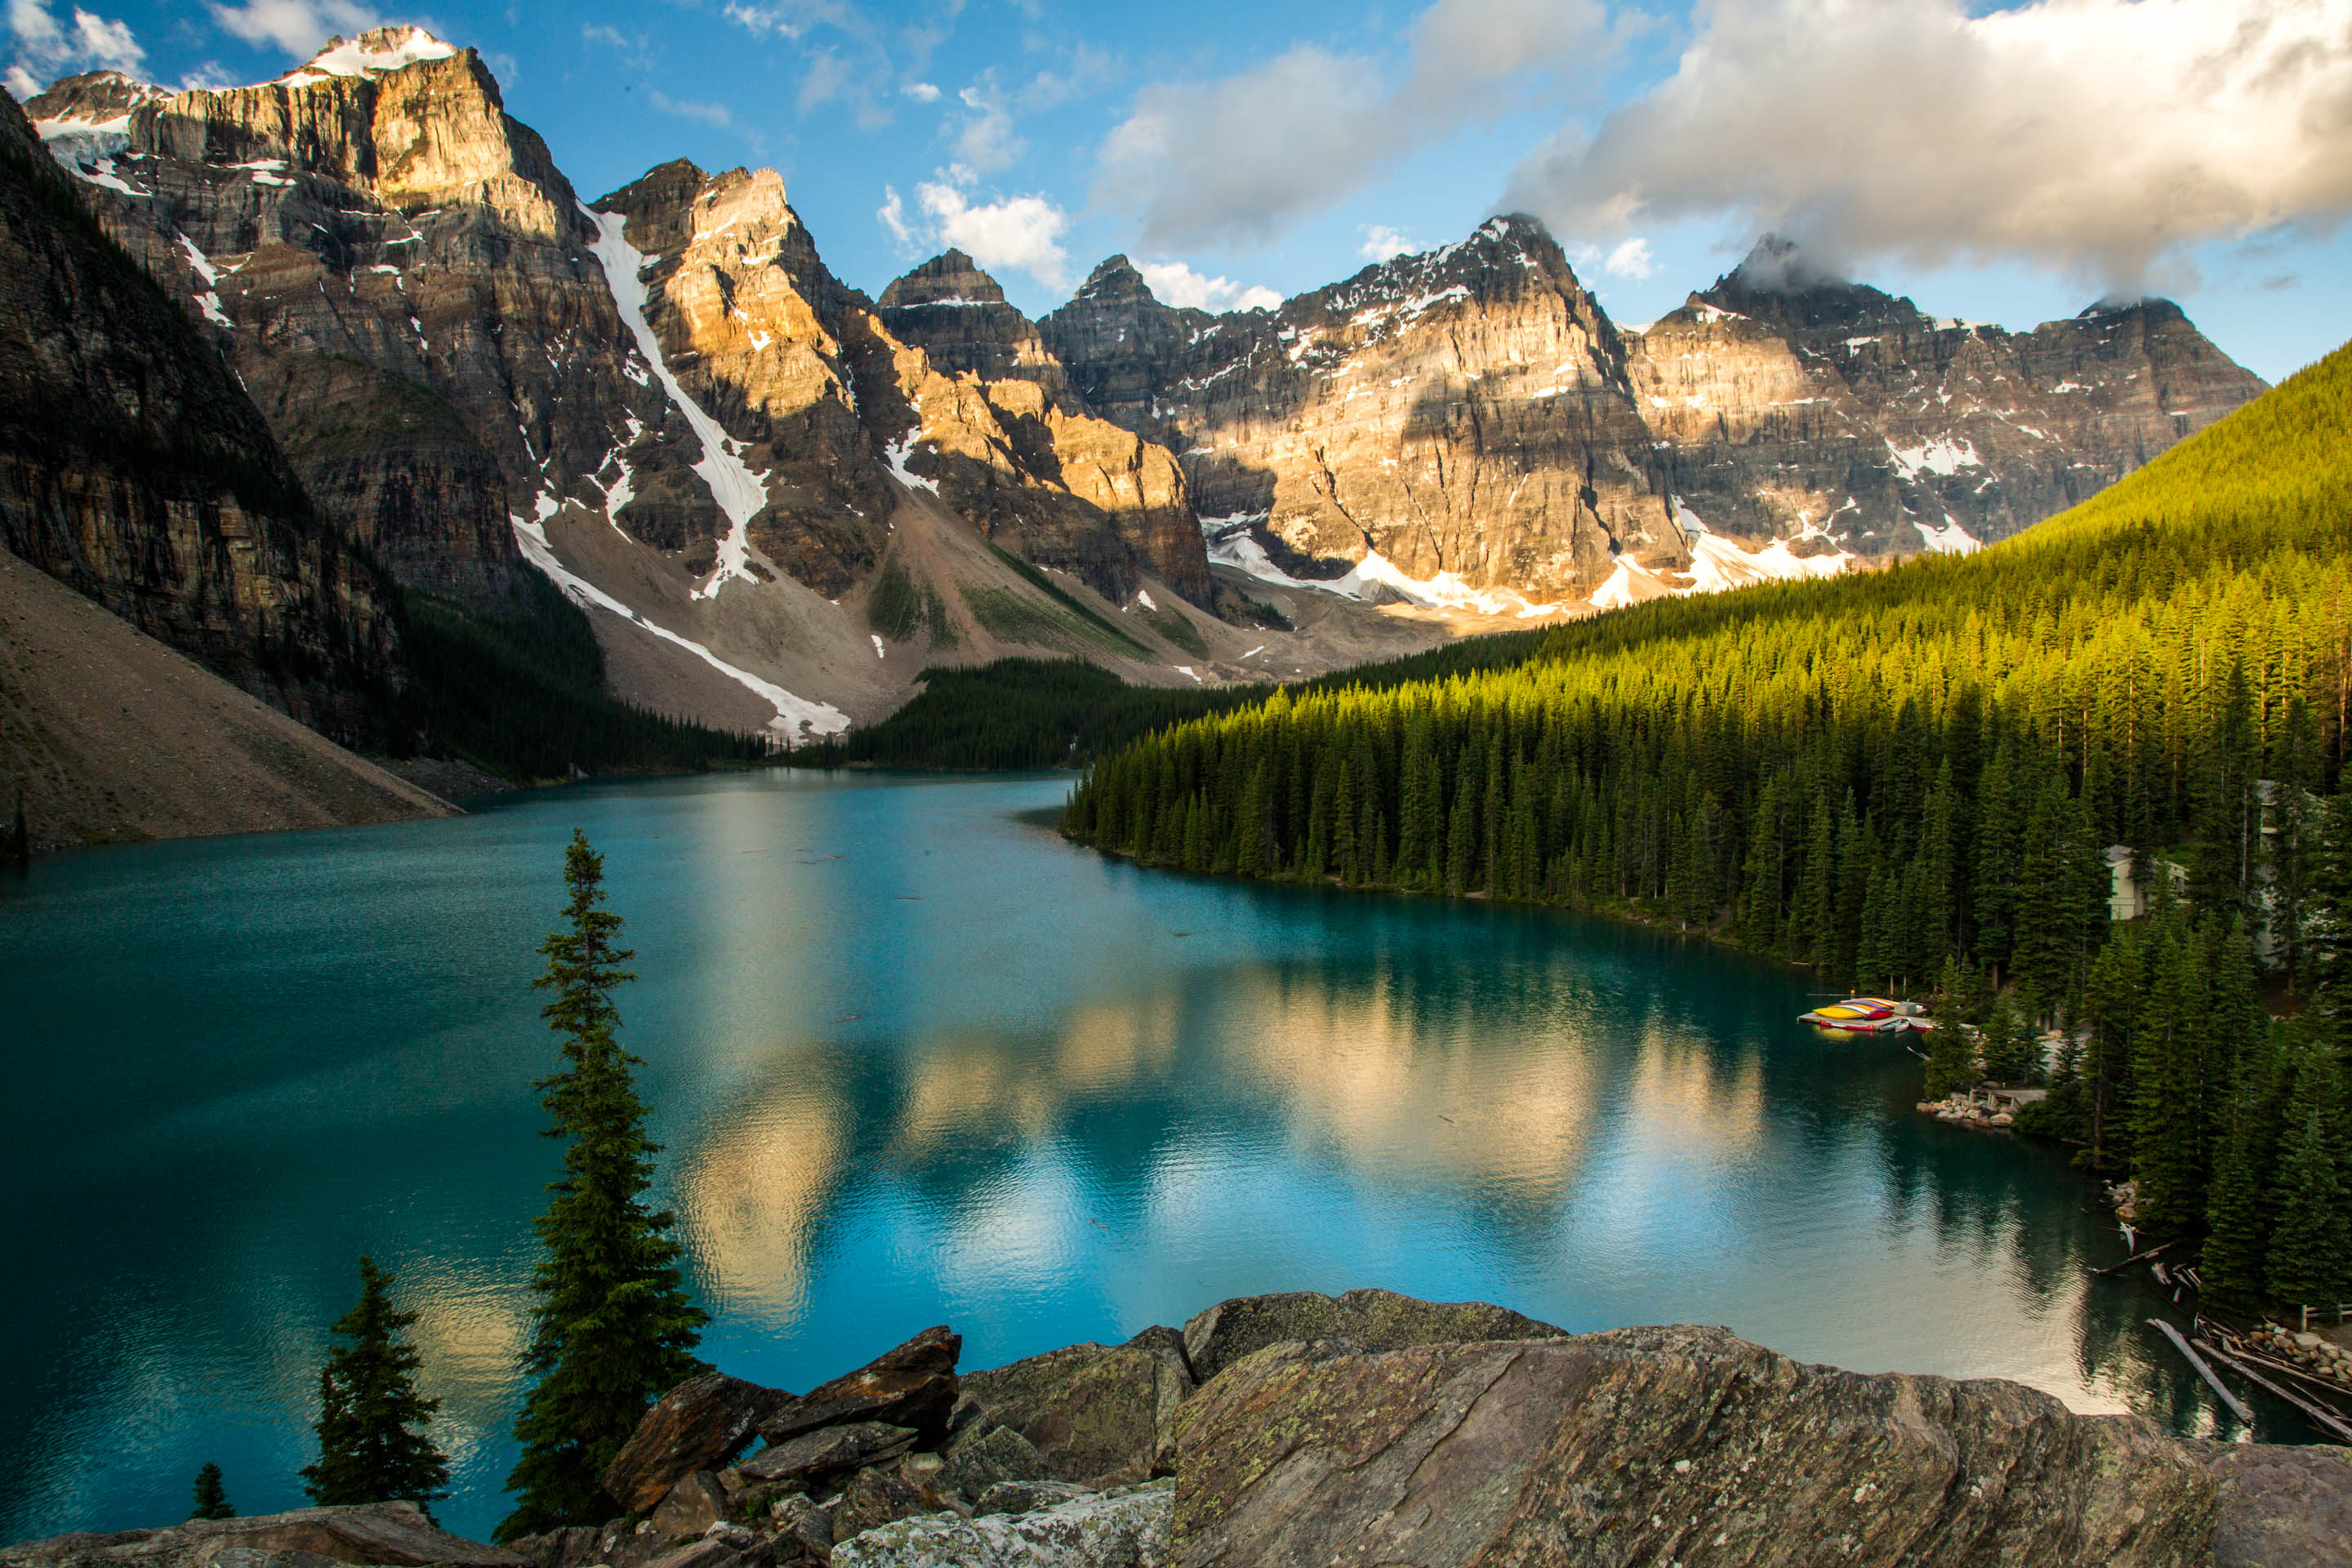 Top 10 Most Unique And Luxurious Vacation Destinations - Valley of 10 Peaks, Alberta, Canada